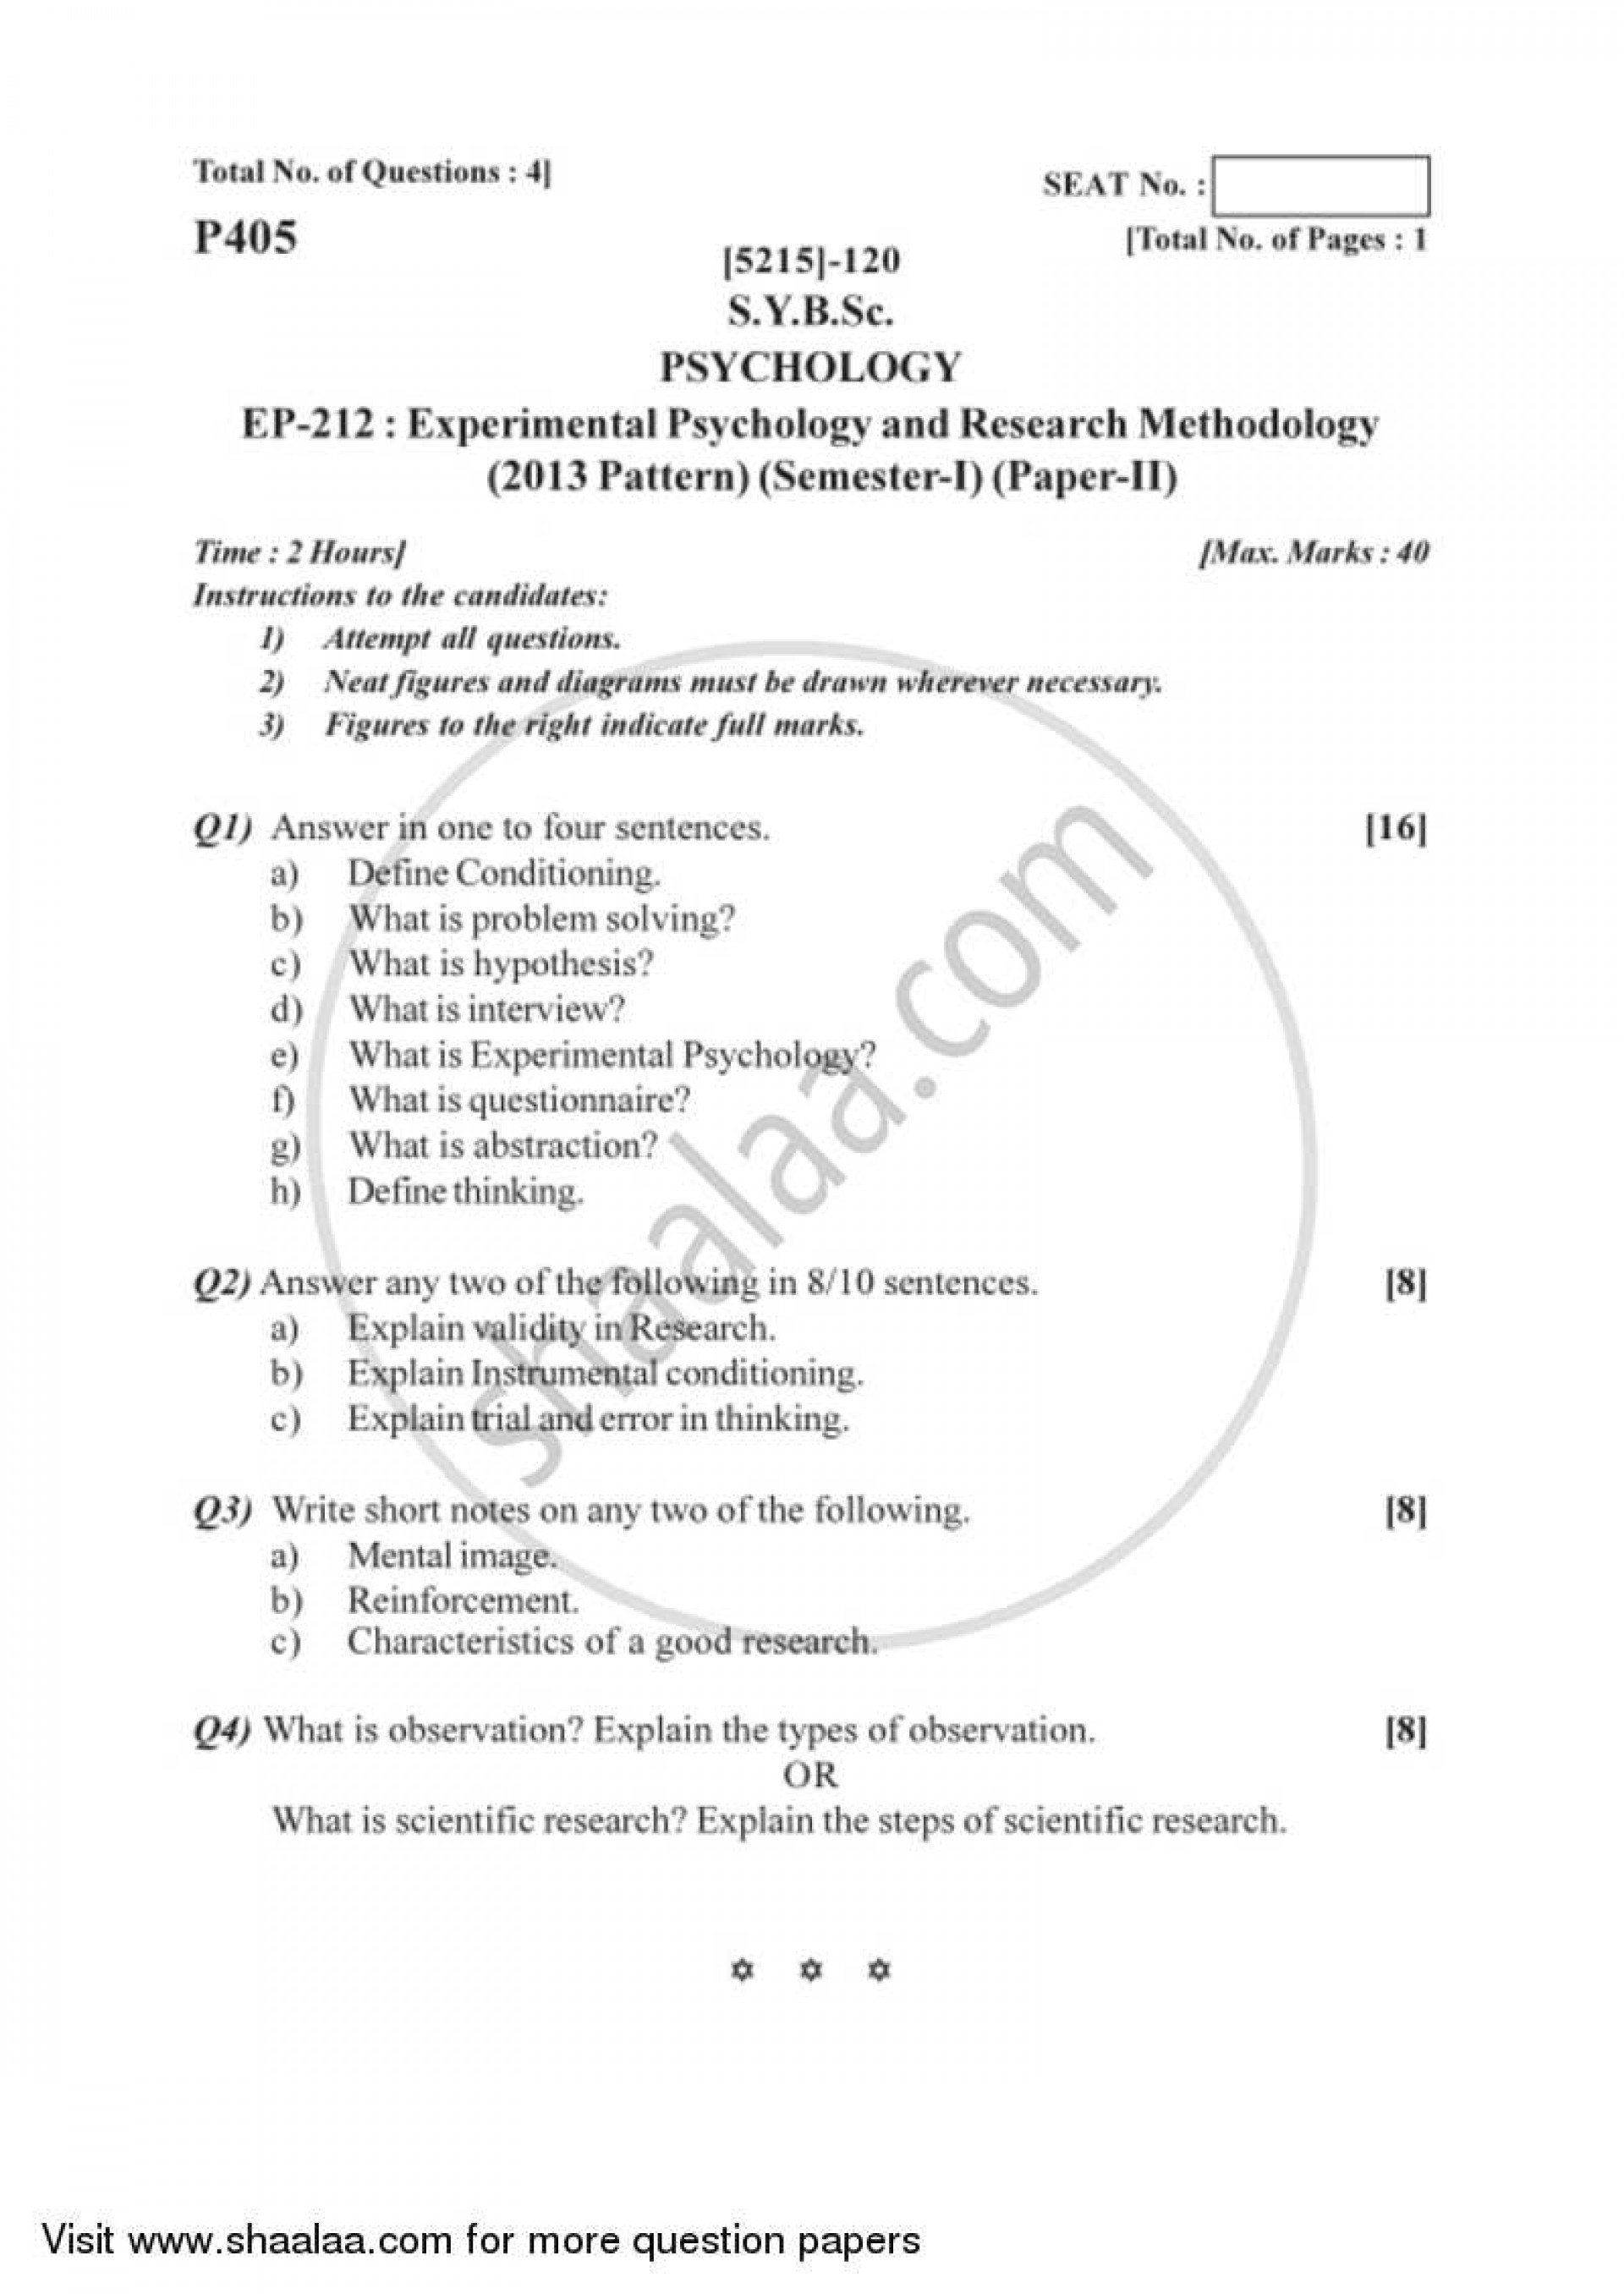 001 University Of Pune Bachelor Bsc Experimental Psychology Research Methodology Semester Sybsc Pattern 20a139127c9aa4d488dbfc2180e67df98s Unforgettable Papers 2017 1920